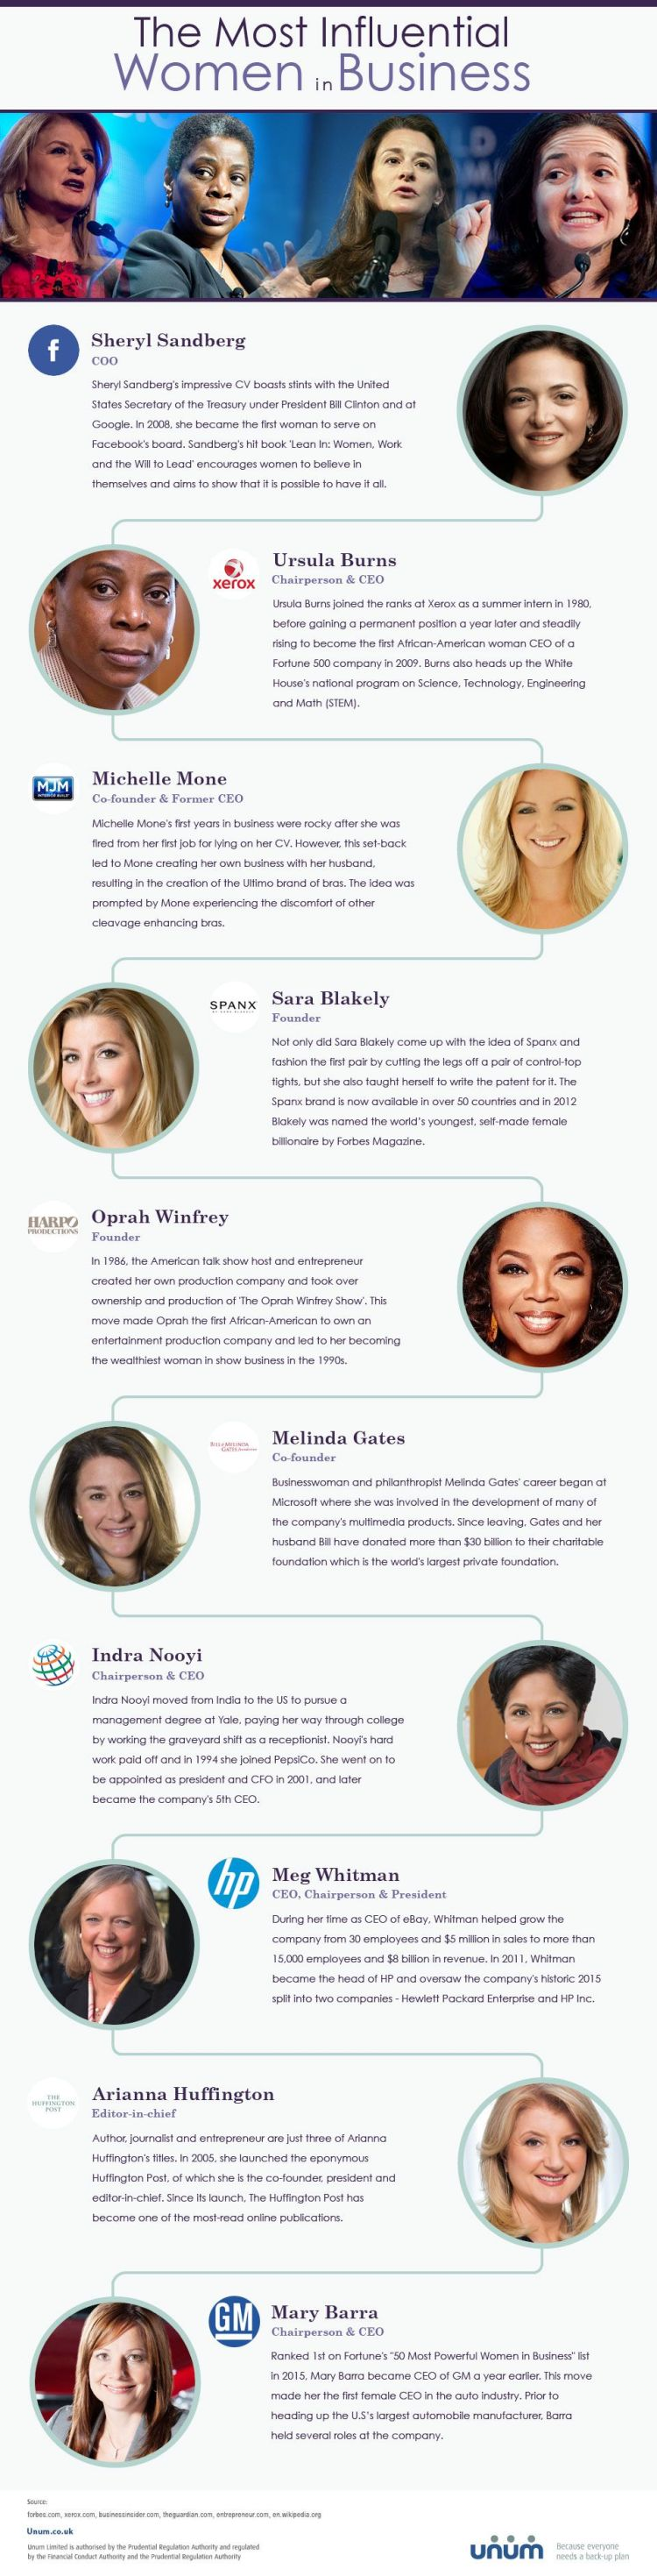 The Most Influential Women in Business #Infographic